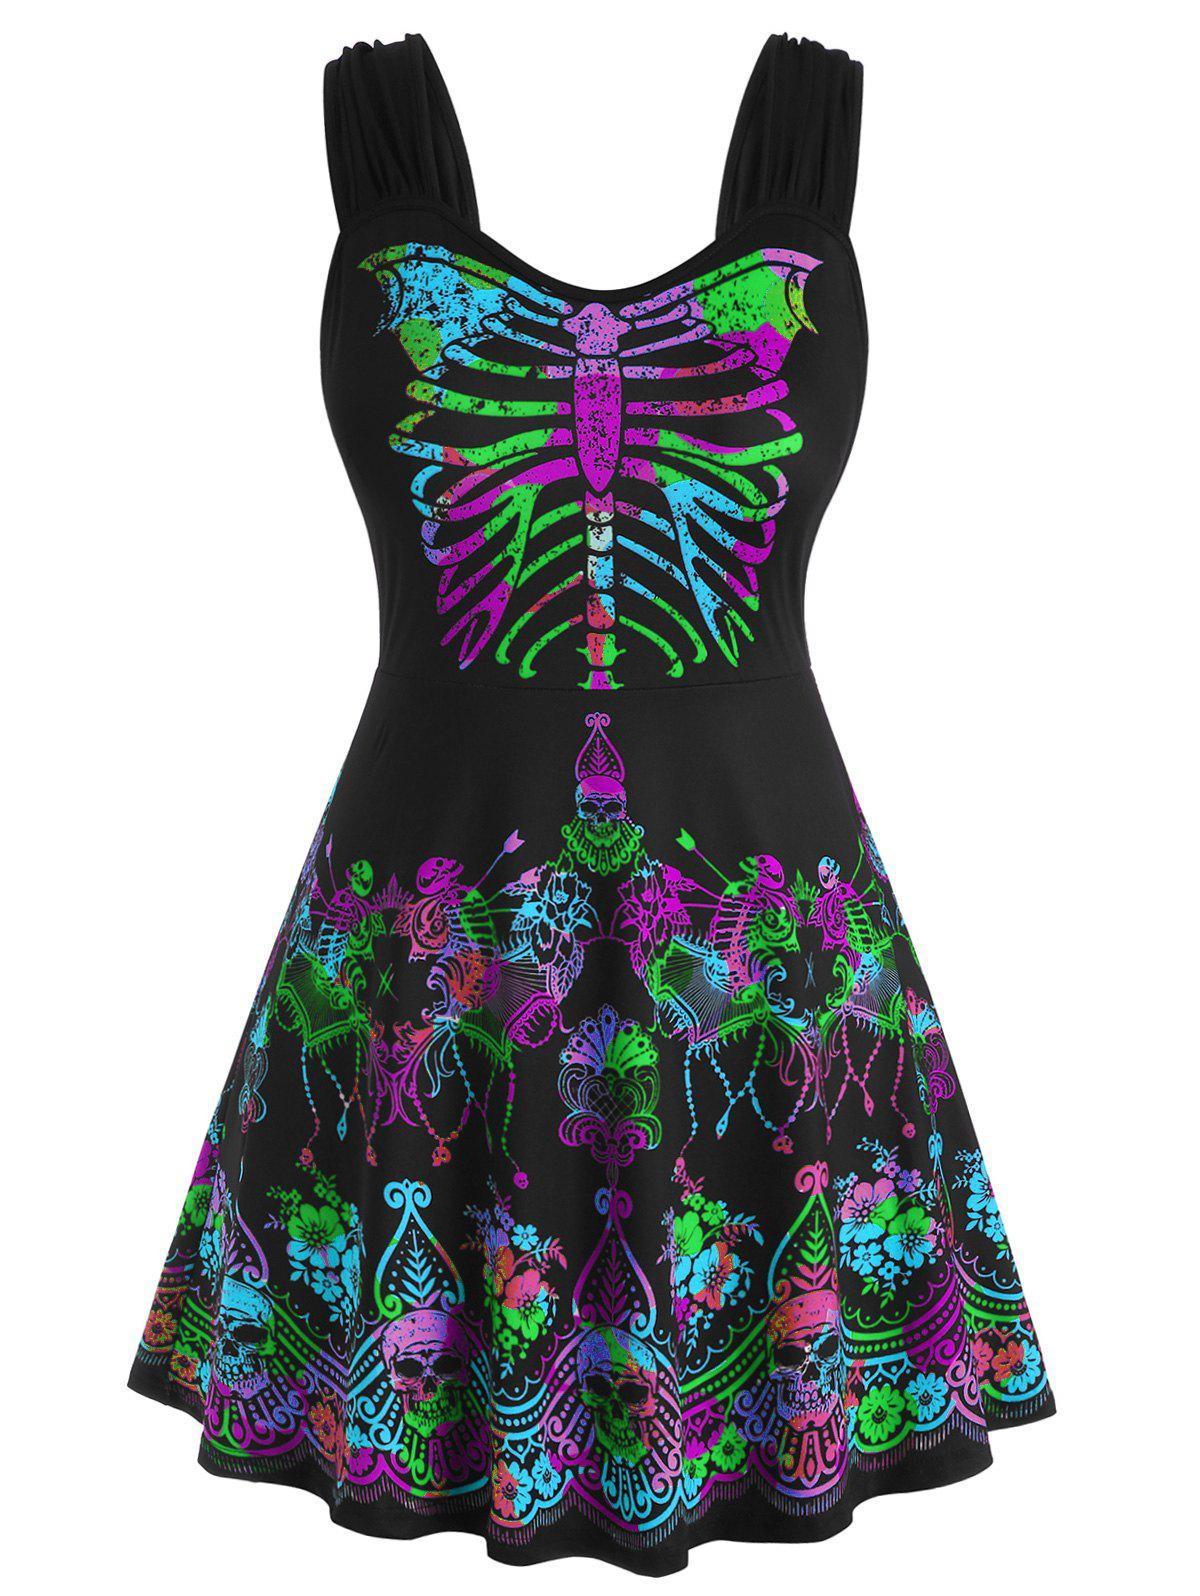 Butterfly Skeleton Skull Floral Halloween Plus Size Tank Top - GREEN 5X